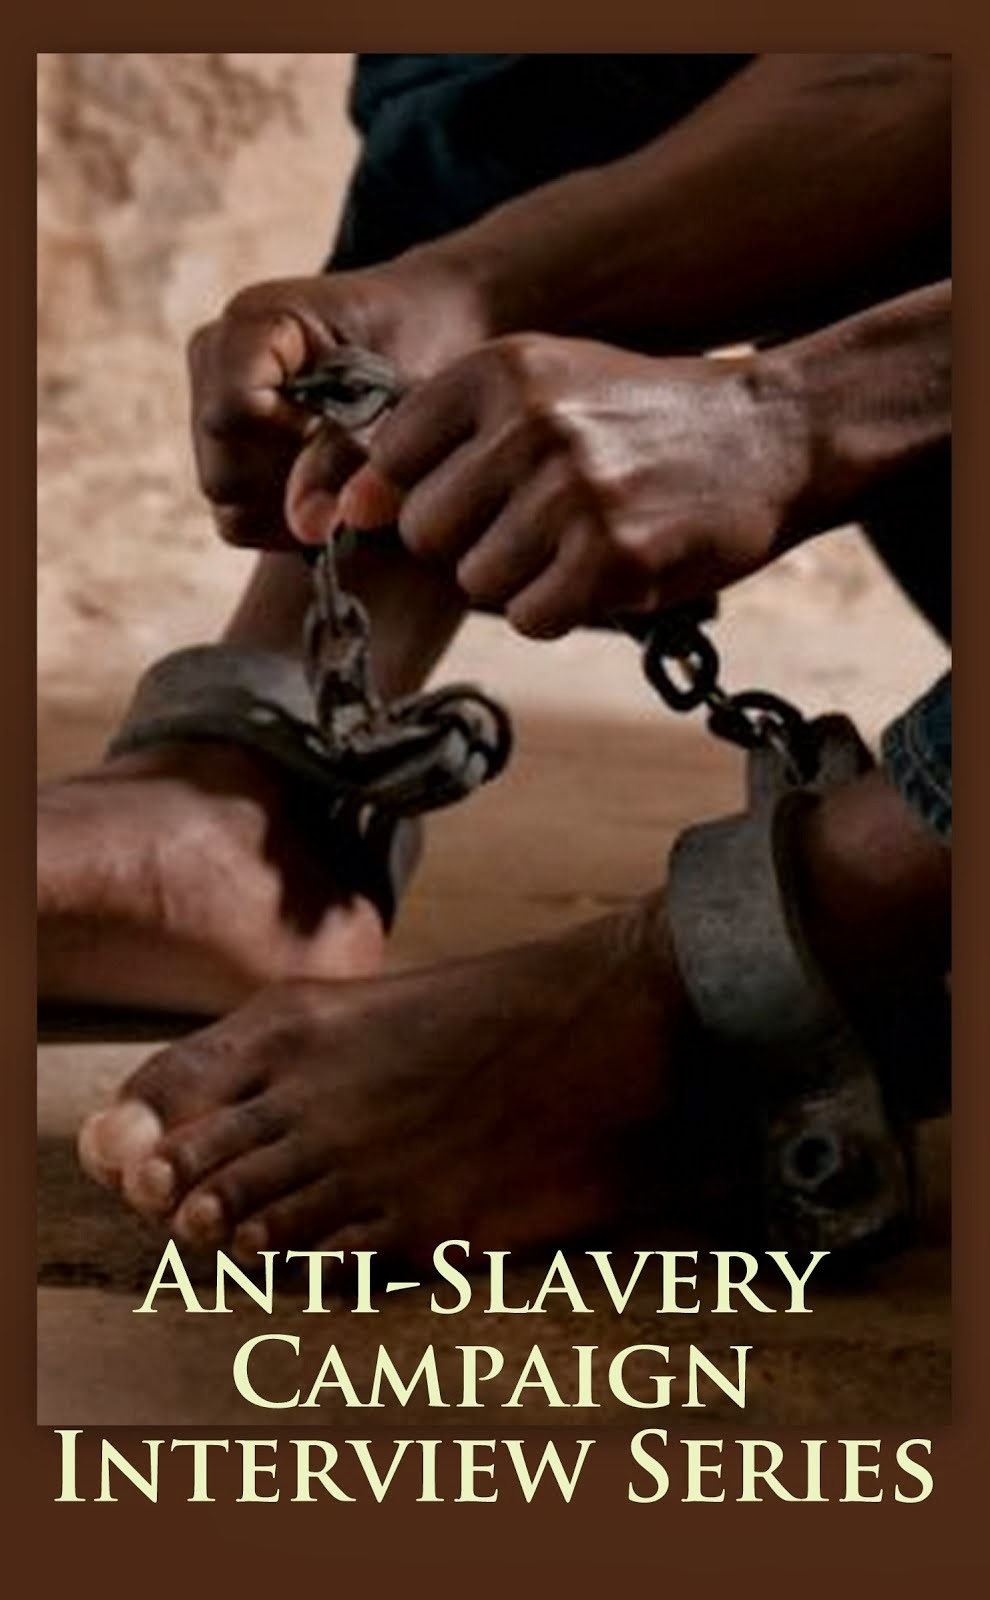 BREAKING THE CHAINS OF SLAVERY AND ITS LEGACY